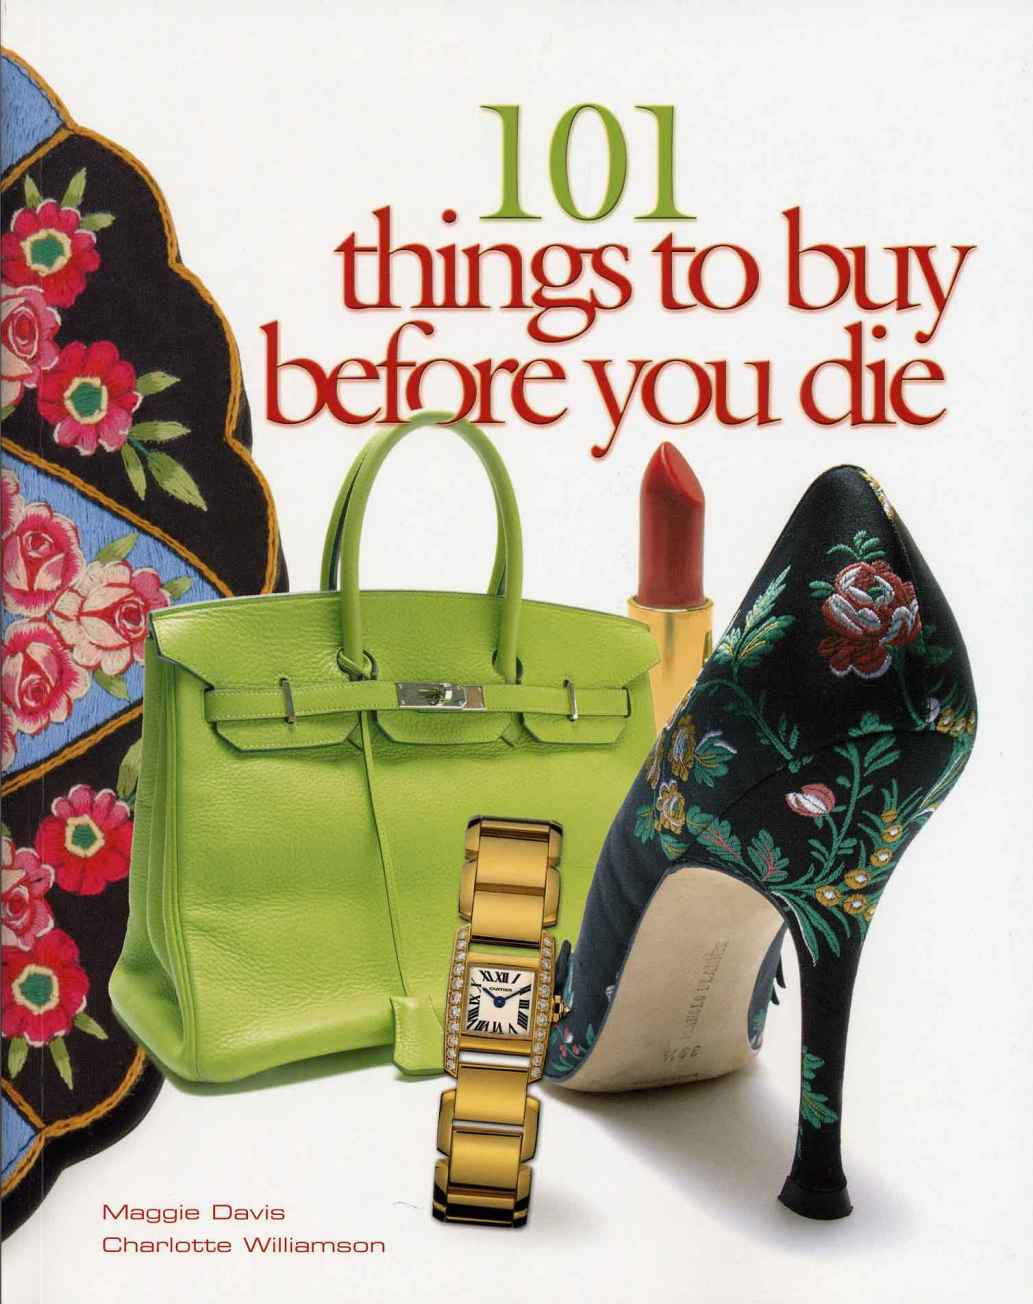 101 Things to Buy Before You Die